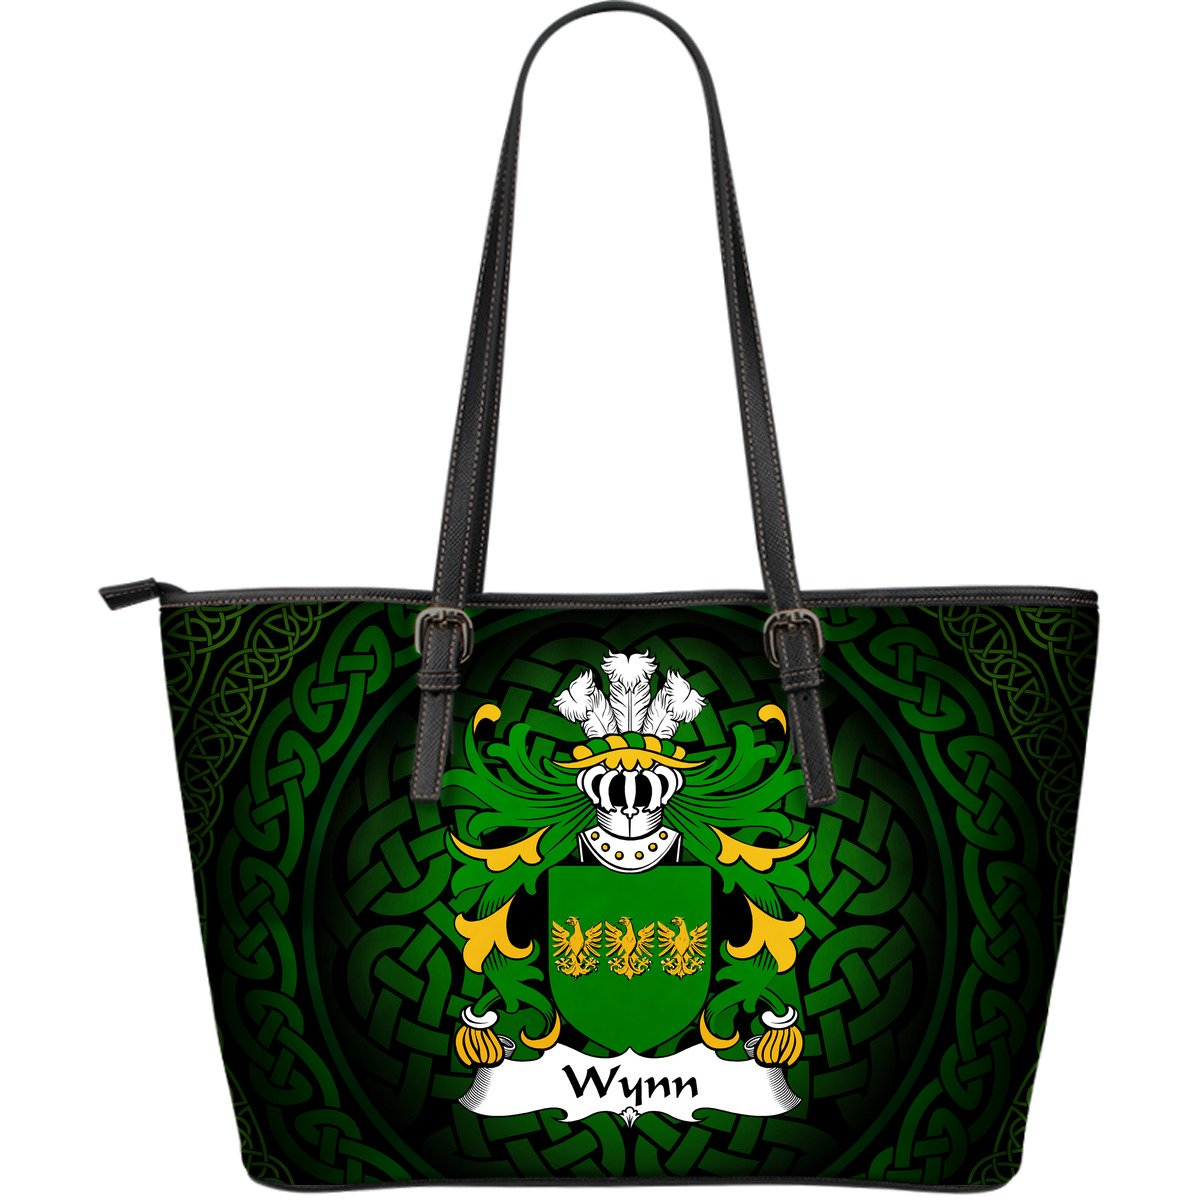 Celtic Wales - Wynn (Of Gwydir, Caernonfonshire) Welsh Surname Leather Tote